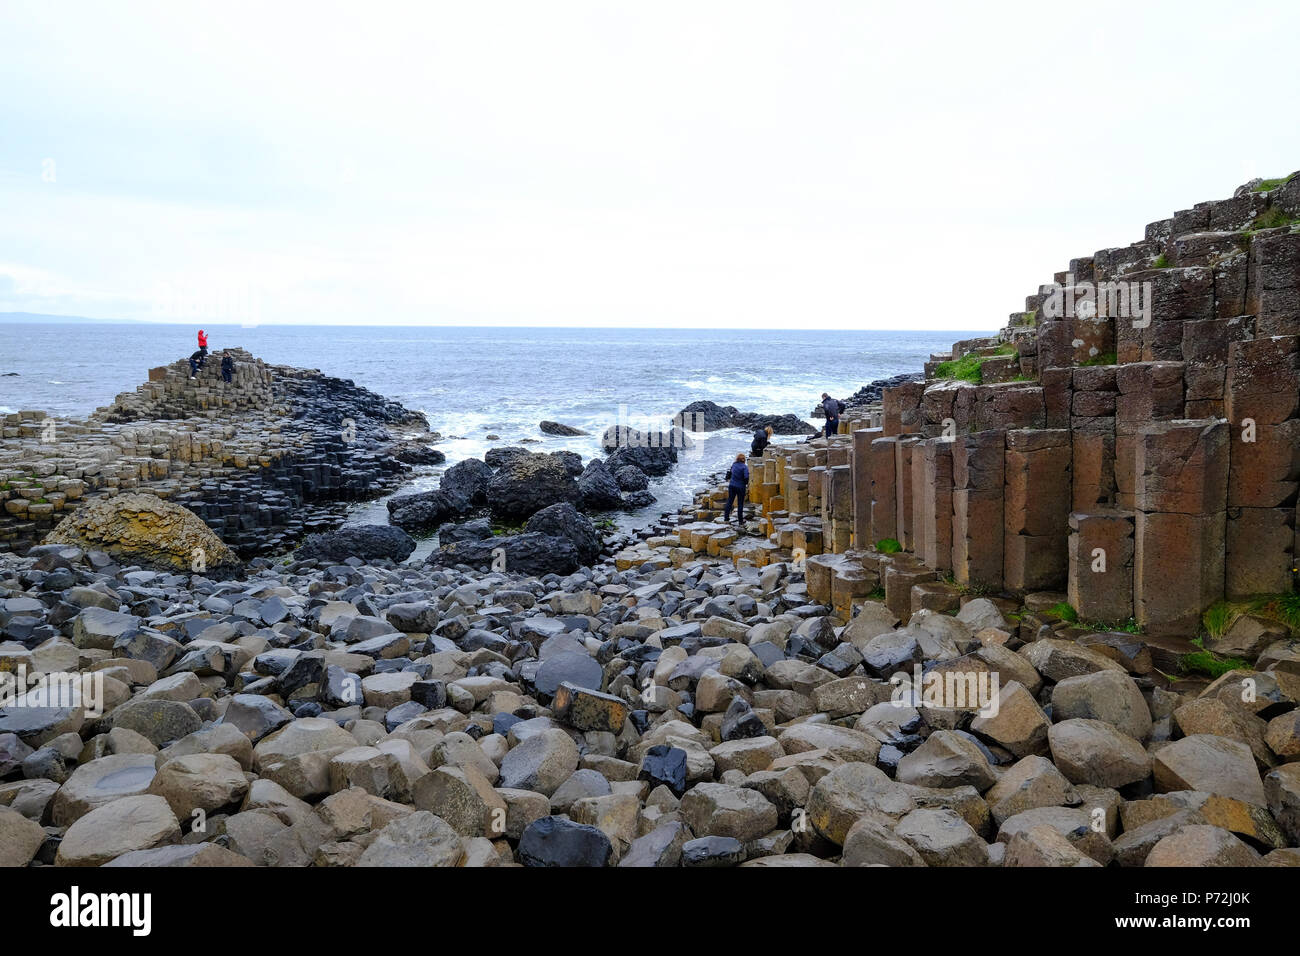 Giant's Causeway, UNESCO World Heritage Site, Bushmills, County Antrim, on the north coast of Northern Ireland, Ulster, Northern Ireland, UK - Stock Image